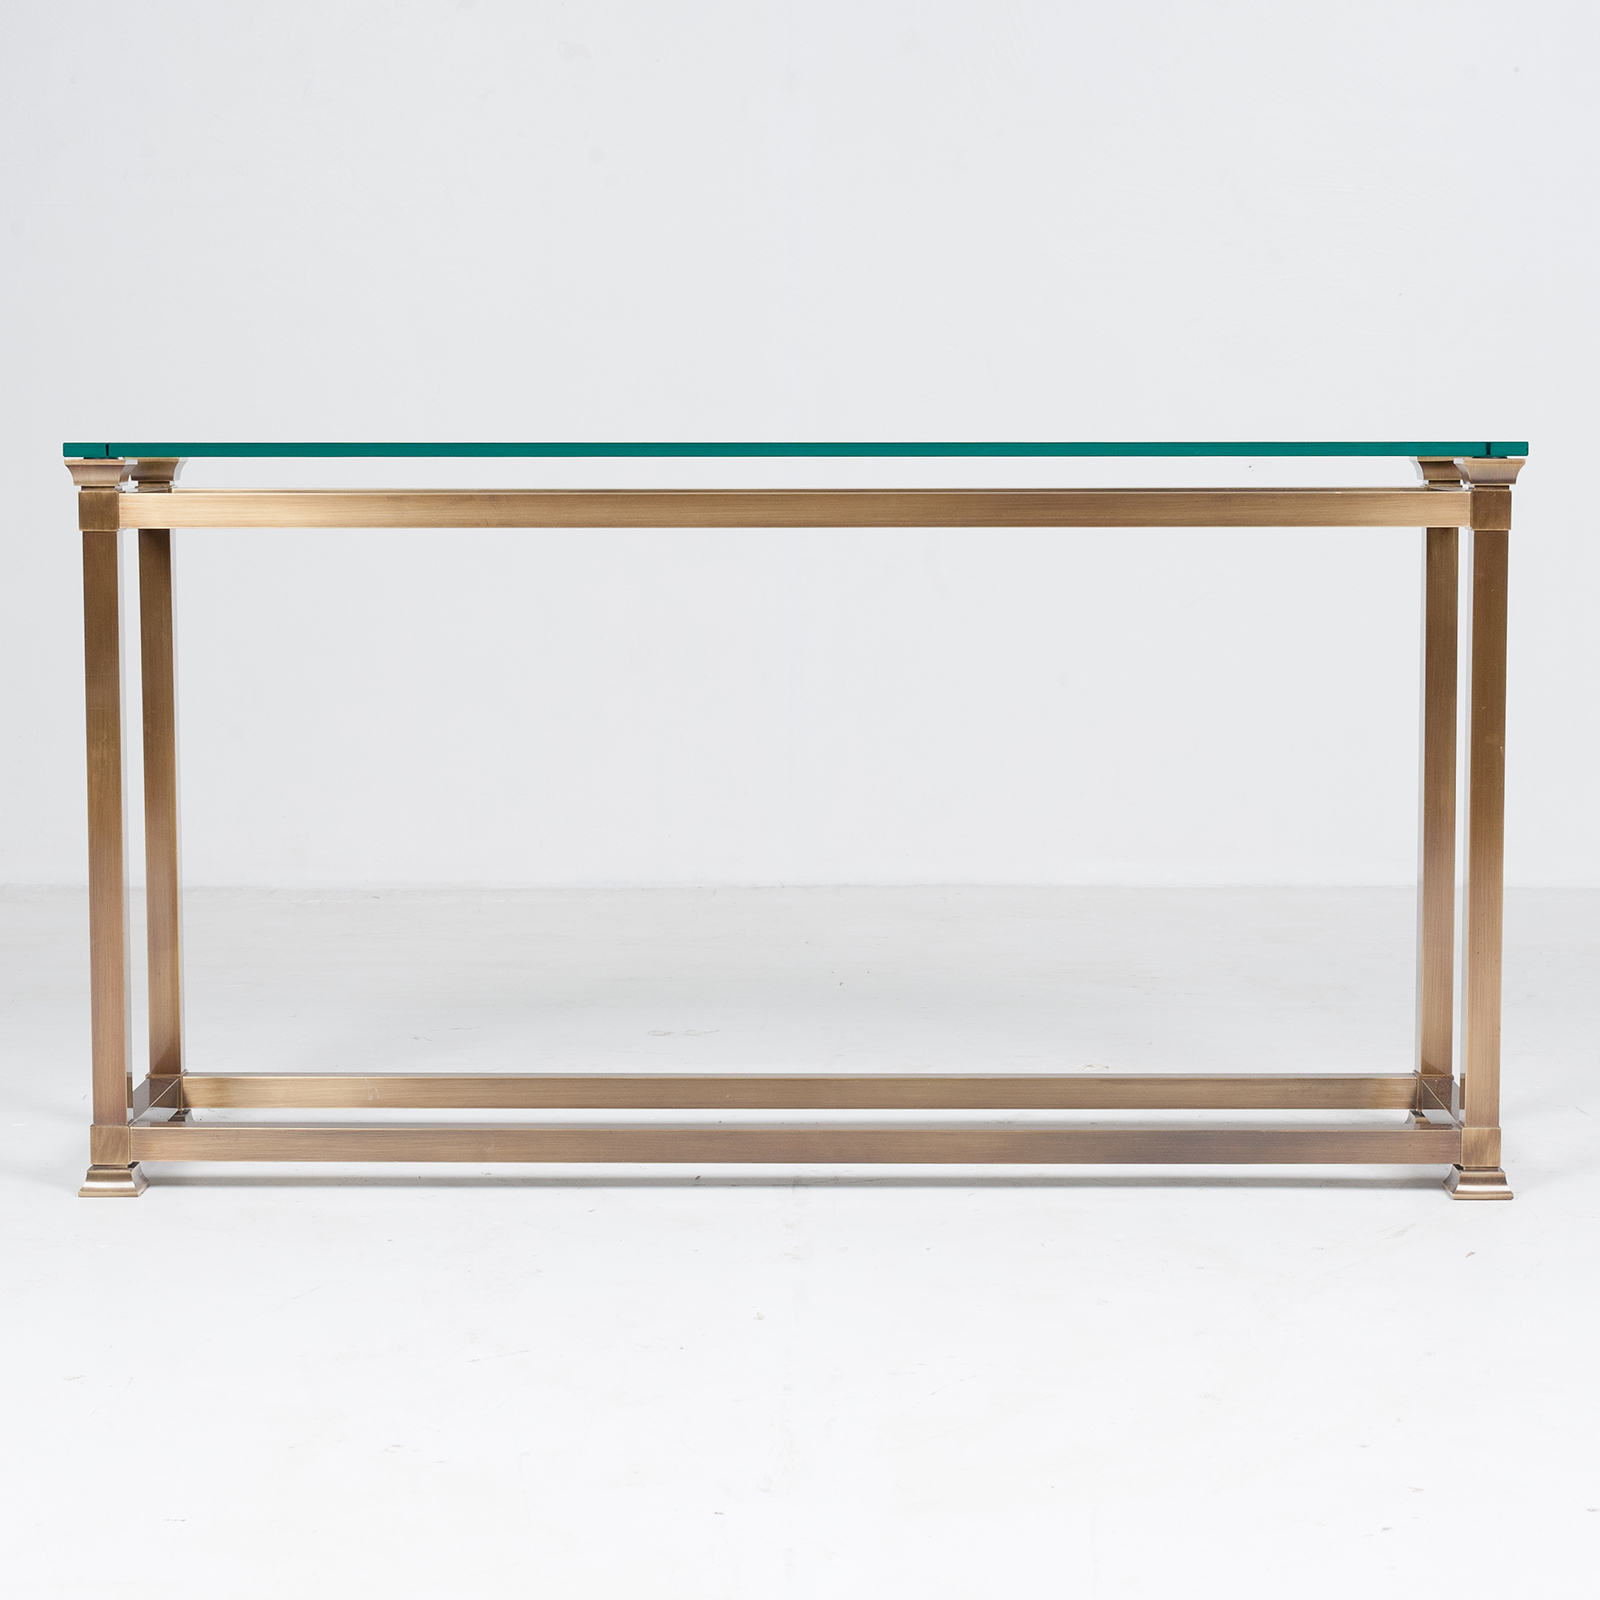 Wall Console In Brass, 1960s, The Netherlands1